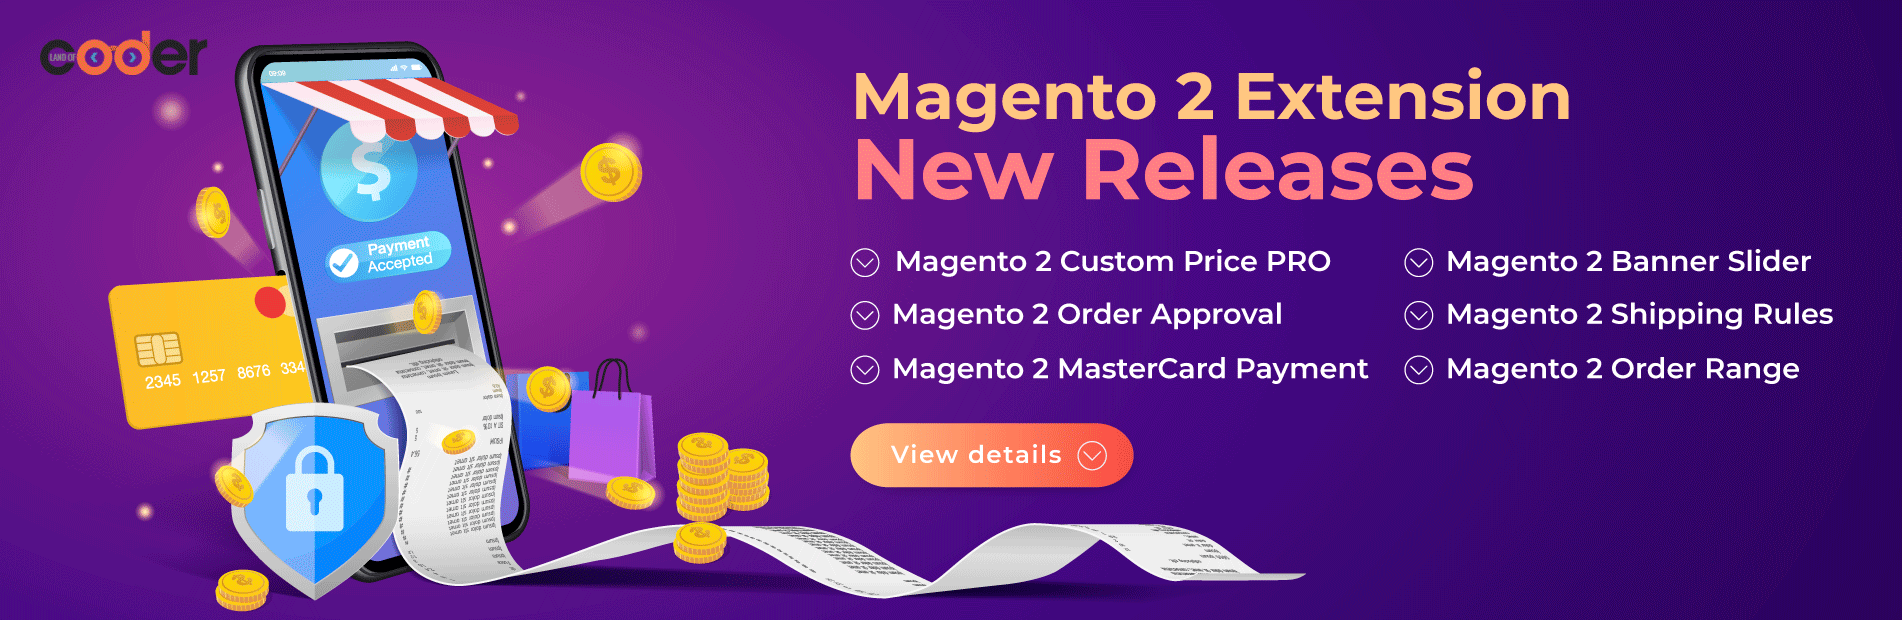 New Magento 2 Extension Release